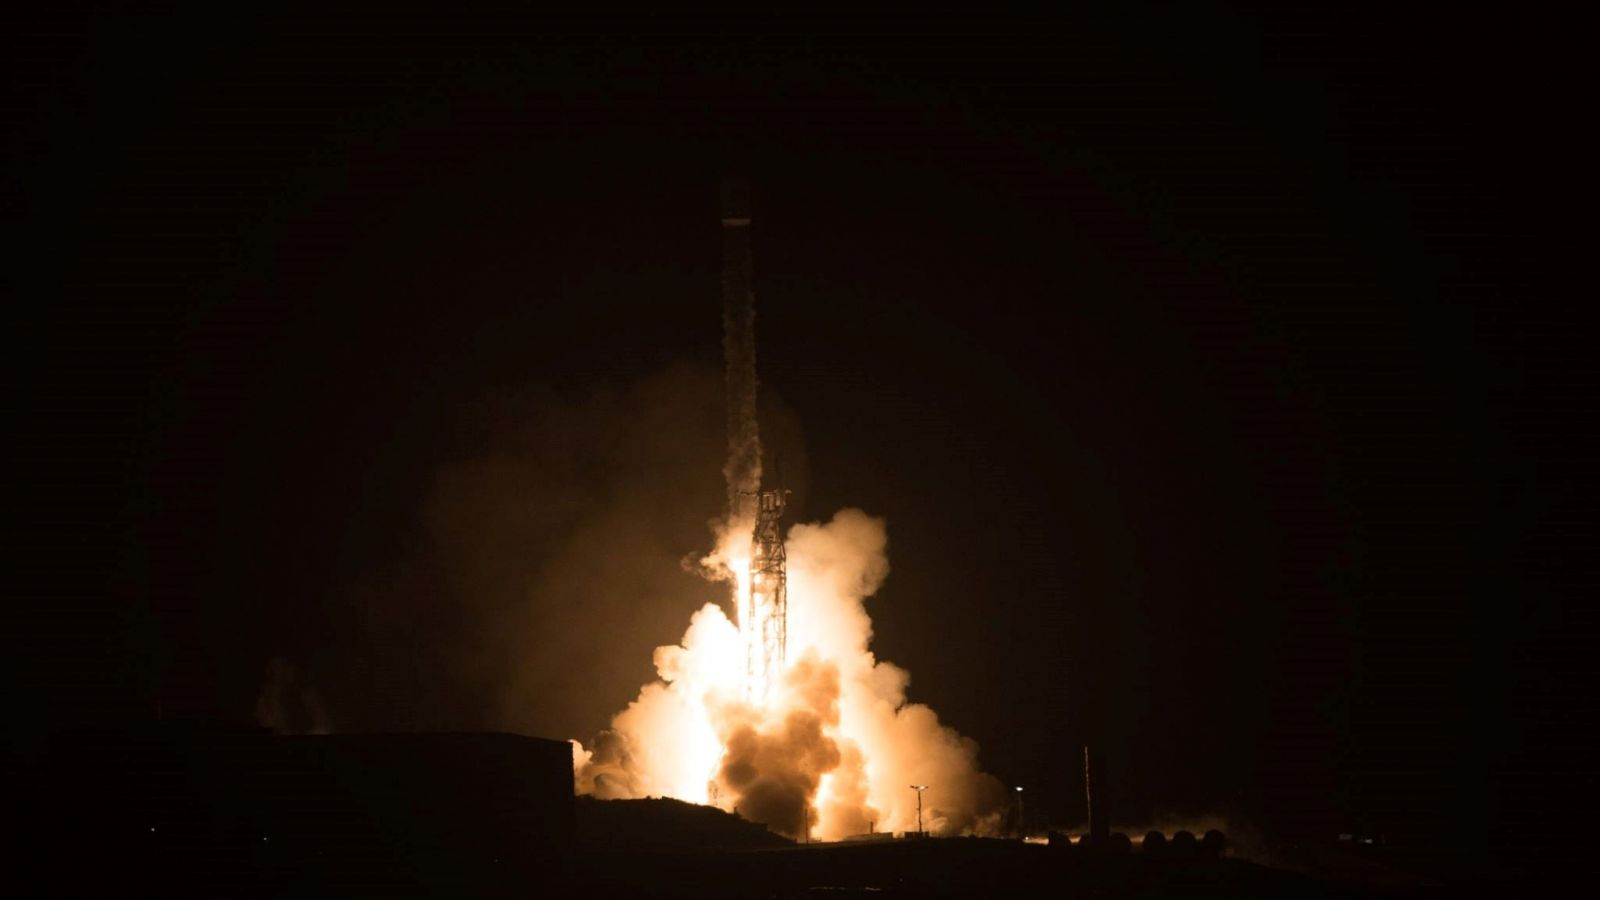 Launching before dawn, the Falcon 9 sends 10 Iridium NEXT satellites into space for the Iridium-3 mission. Photo Credit: Vandenberg Air Force Base